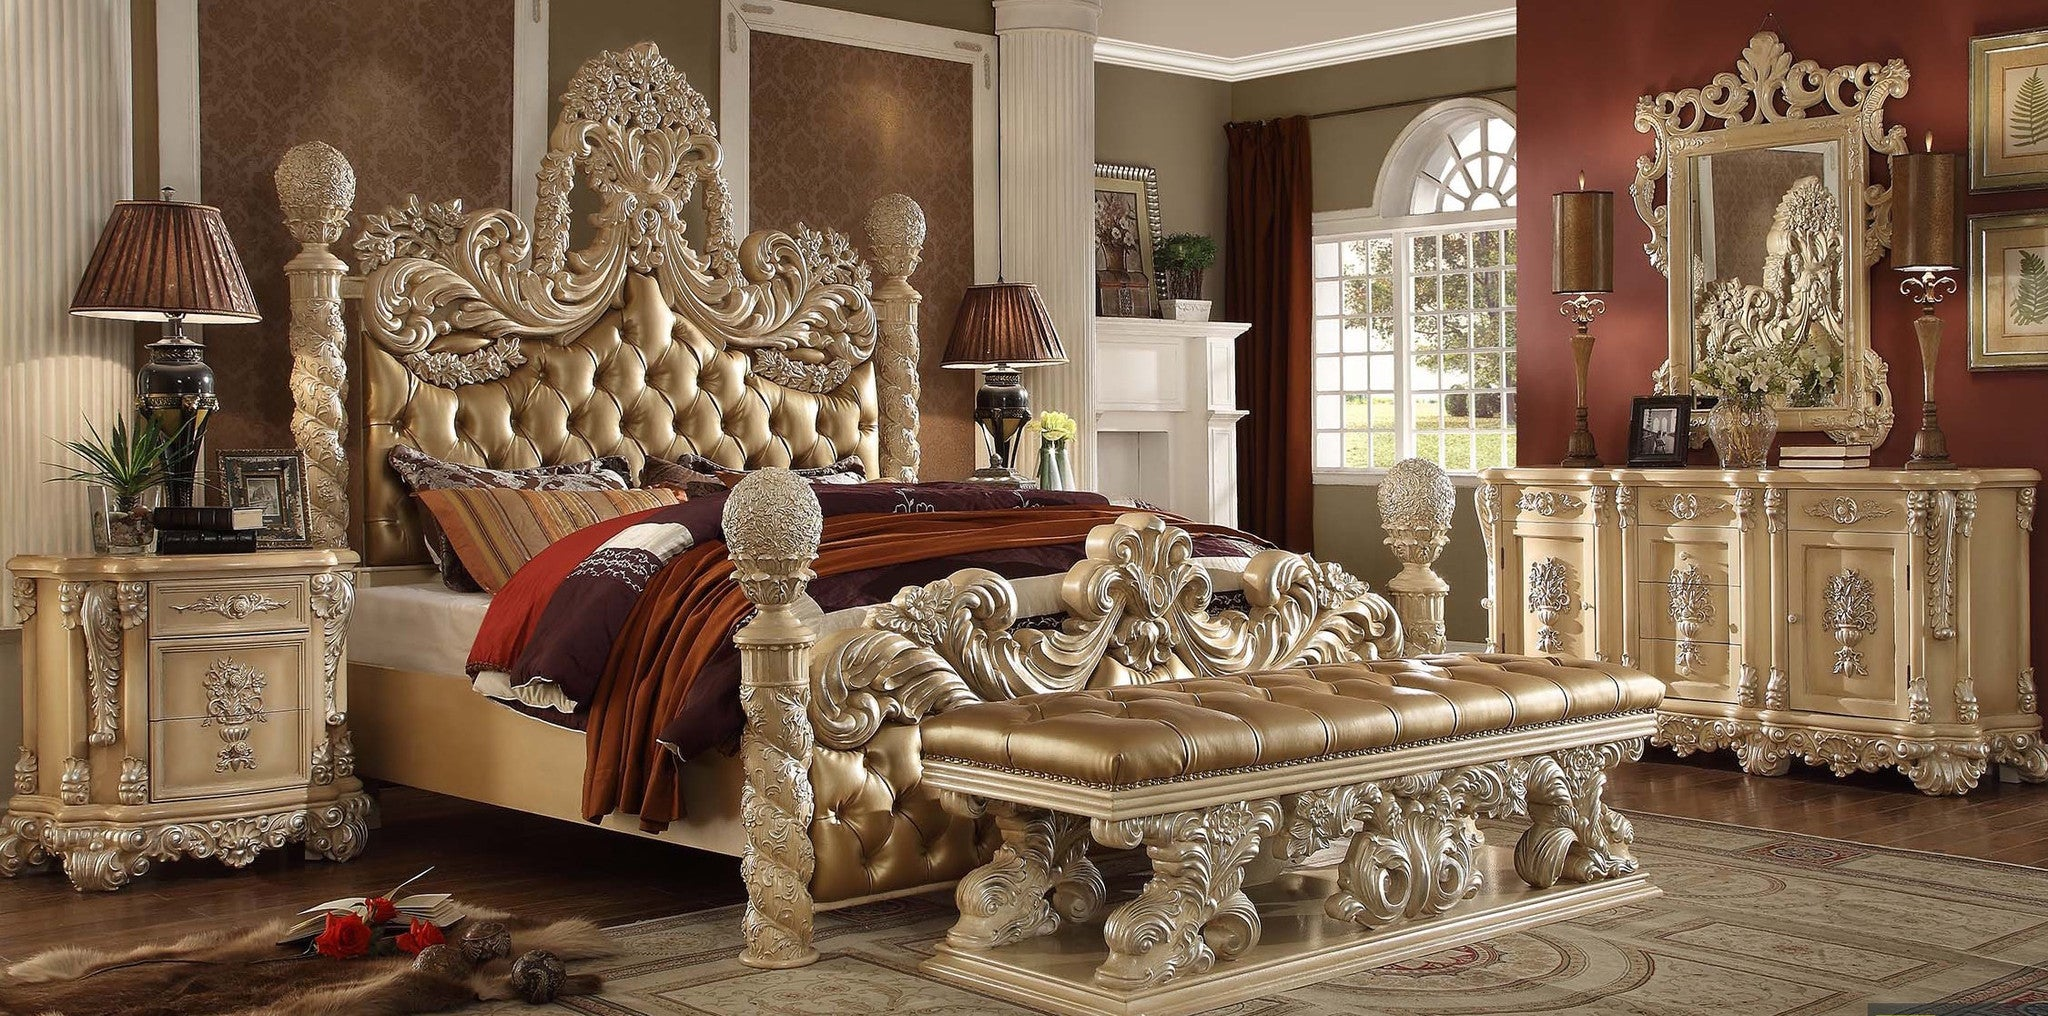 Wood Carving European Style Luxury King Bed Gallery Of